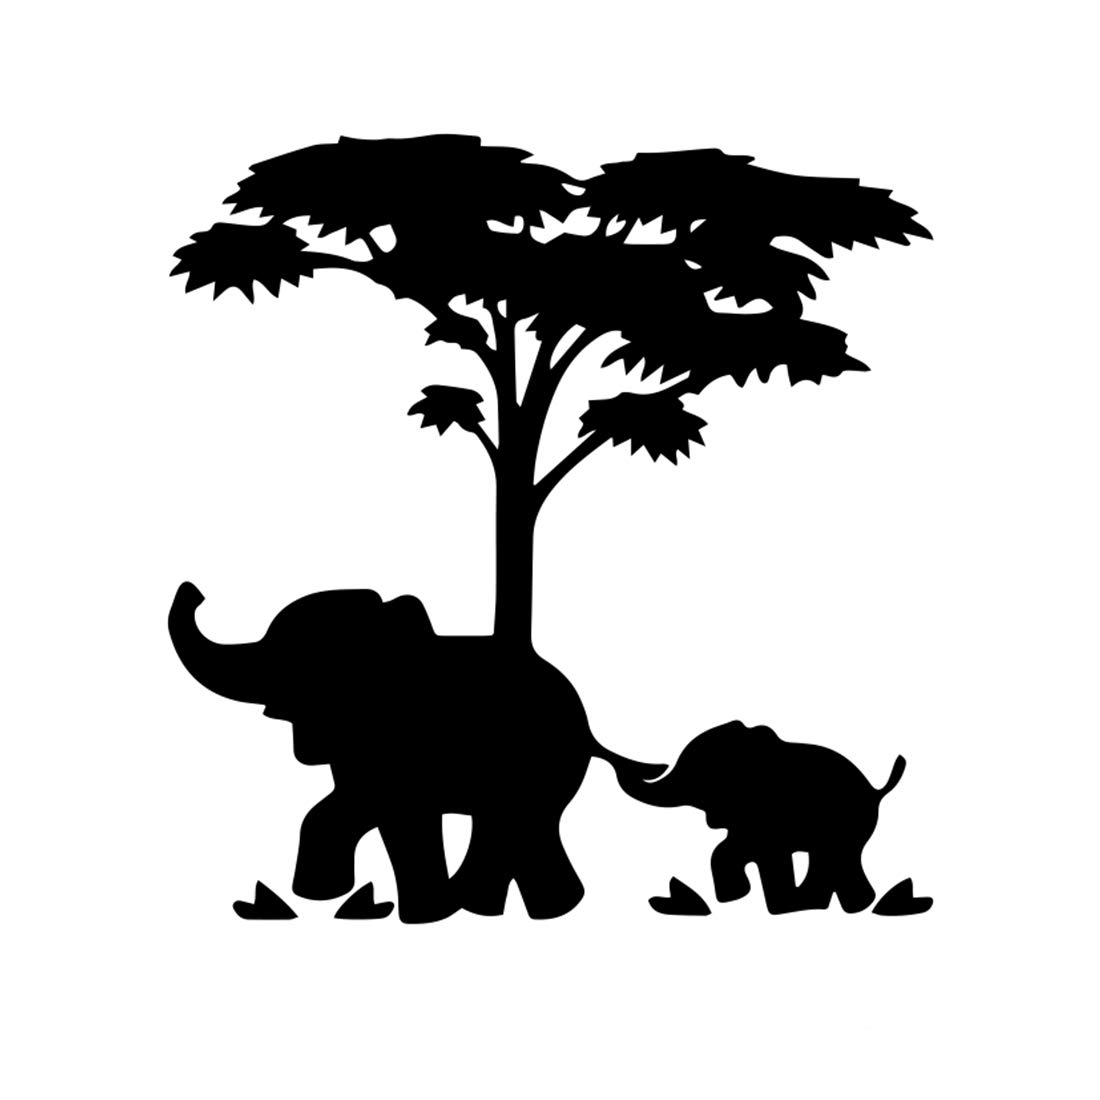 Elephant Mother and Baby Silhouette Sticker Decal Graphic Vinyl Label Black